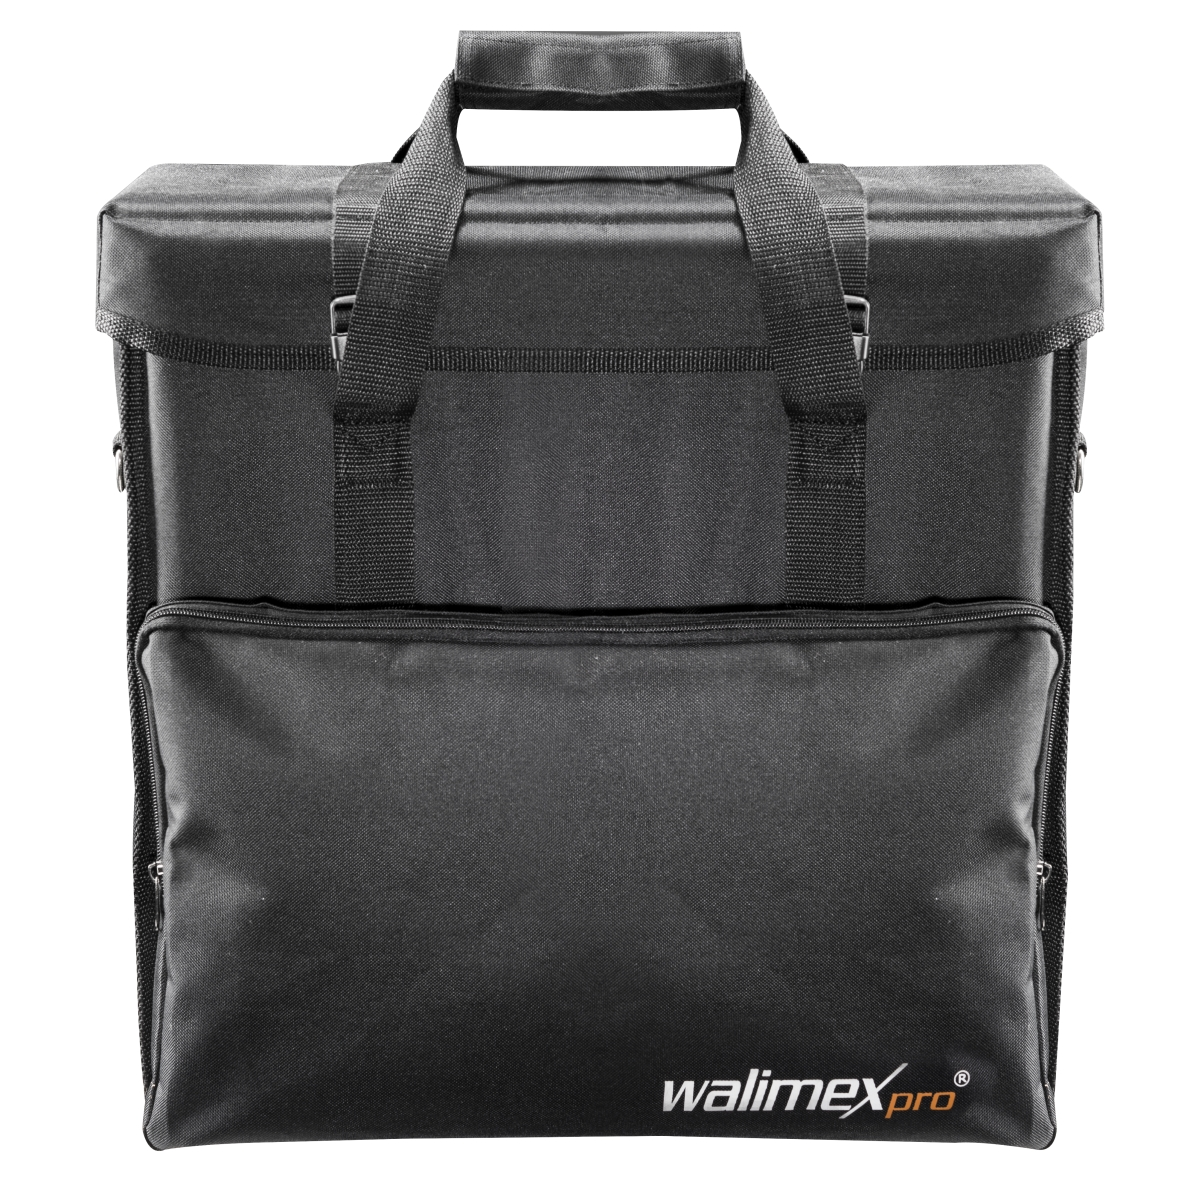 Walimex pro Studio Bag Location